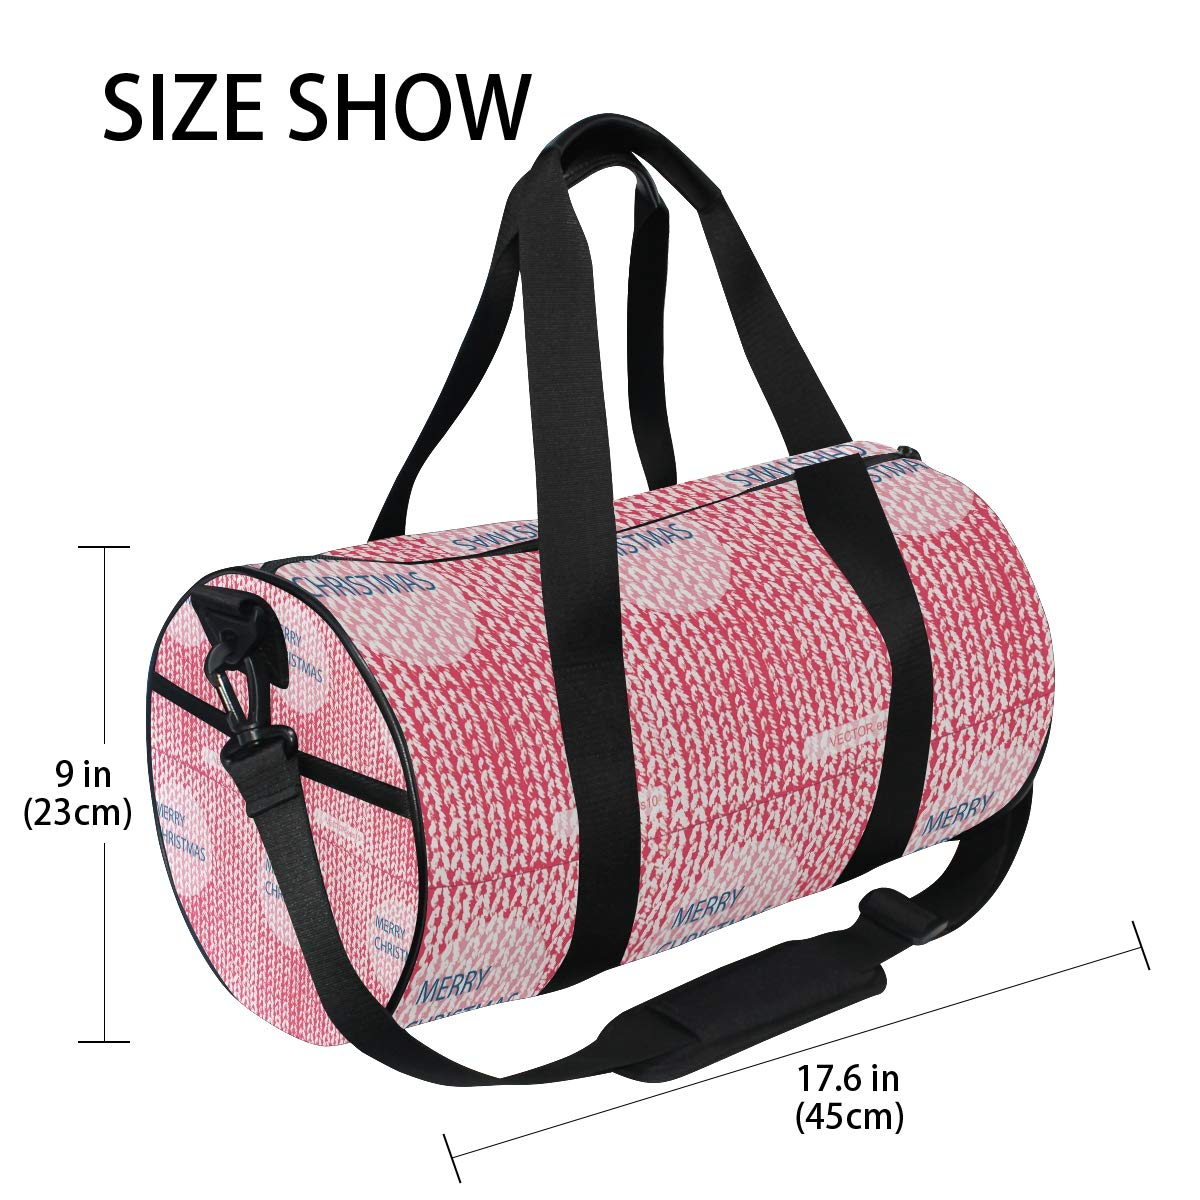 Knitted Christmas Balls Popular casual fitness bag,Non-Slip Wearable Crossbody Bag Waterproof Shoulder Bag.